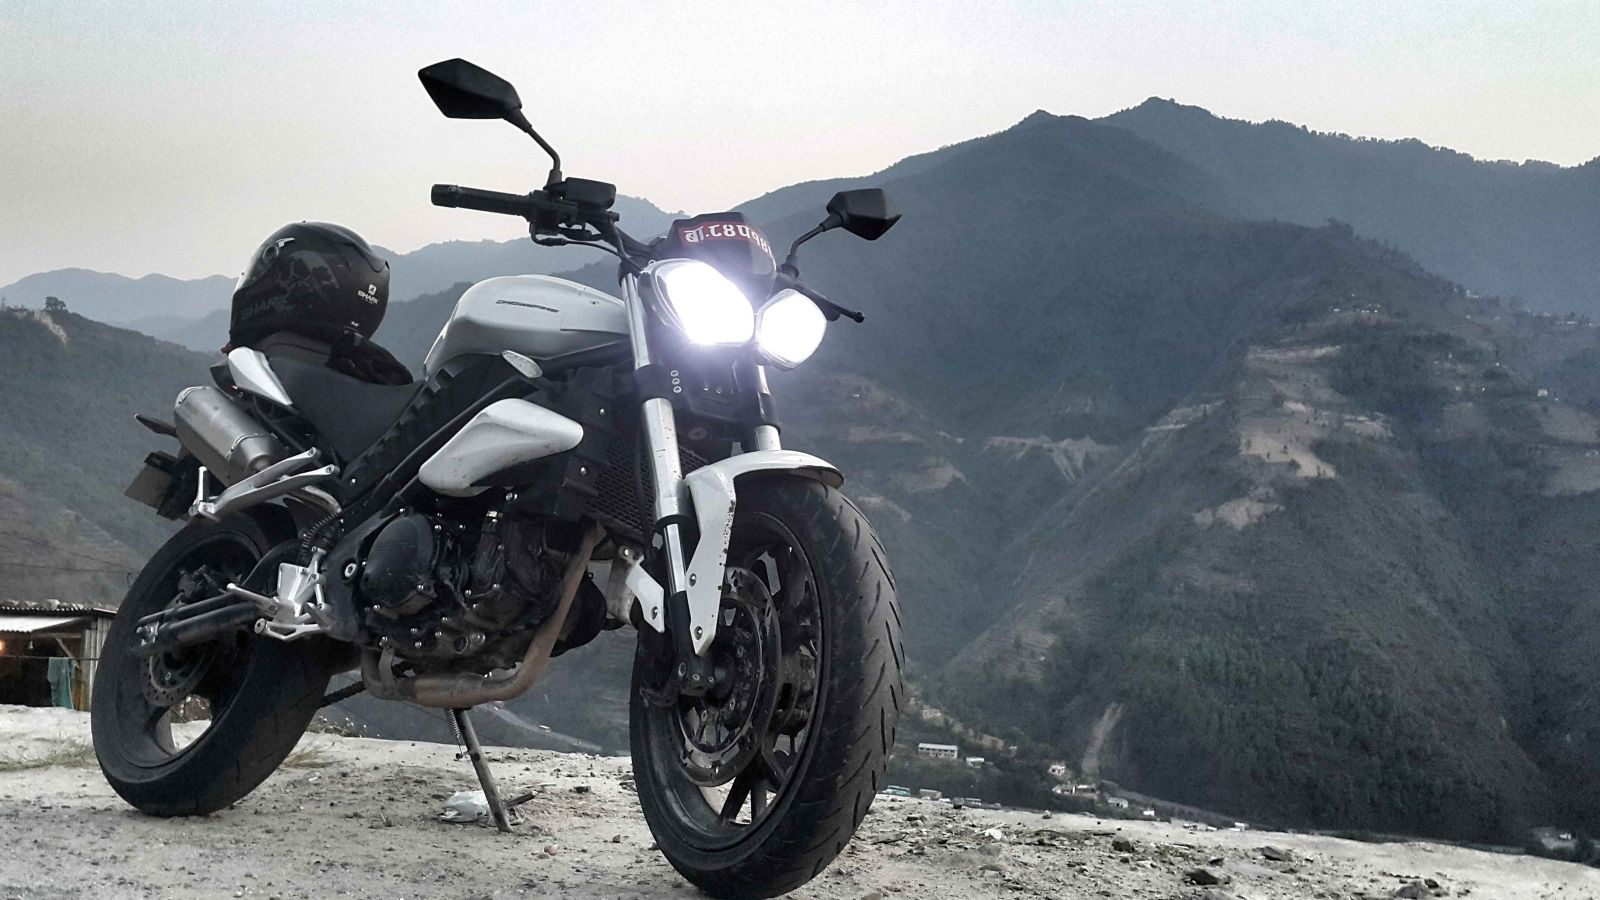 Coming Soon Features Living Twin Bmw Bikes Classic Wheels Pvt Ltd Has Been In The Limelight With Their Famous Crossfire Xz250r Which Fulfilling Dreams Of Dirt Bike And Supermotard